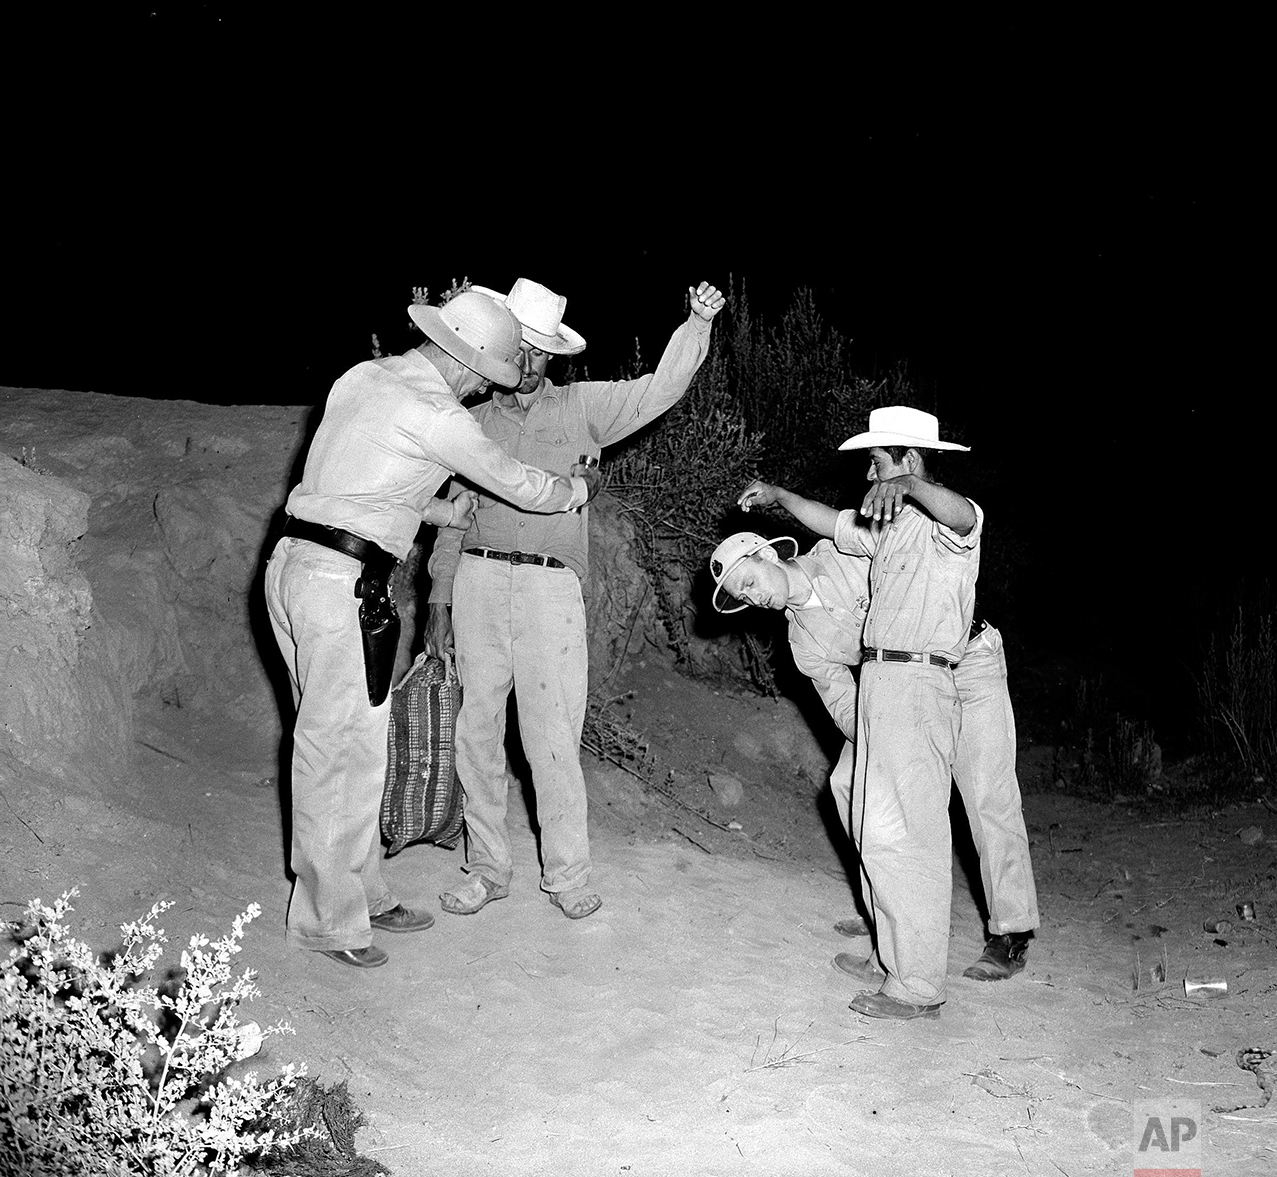 In this Aug. 11, 1951 photo, U.S. Border Patrol inspectors Fred H. Voight, left, and Gordon MacDonald, right, both from the El Centro U.S. Border Patrol sector headquarters, search two Mexican nationals, Pedro Vidal, with bag, and Canuto Garcia, right, shortly after the two men illegally crossed the border from Mexico, west of Calexico, Calif. Mexican laborers try to cross in this area to the United States, to work on the farms of the nearby Imperial Valley. (AP Photo)